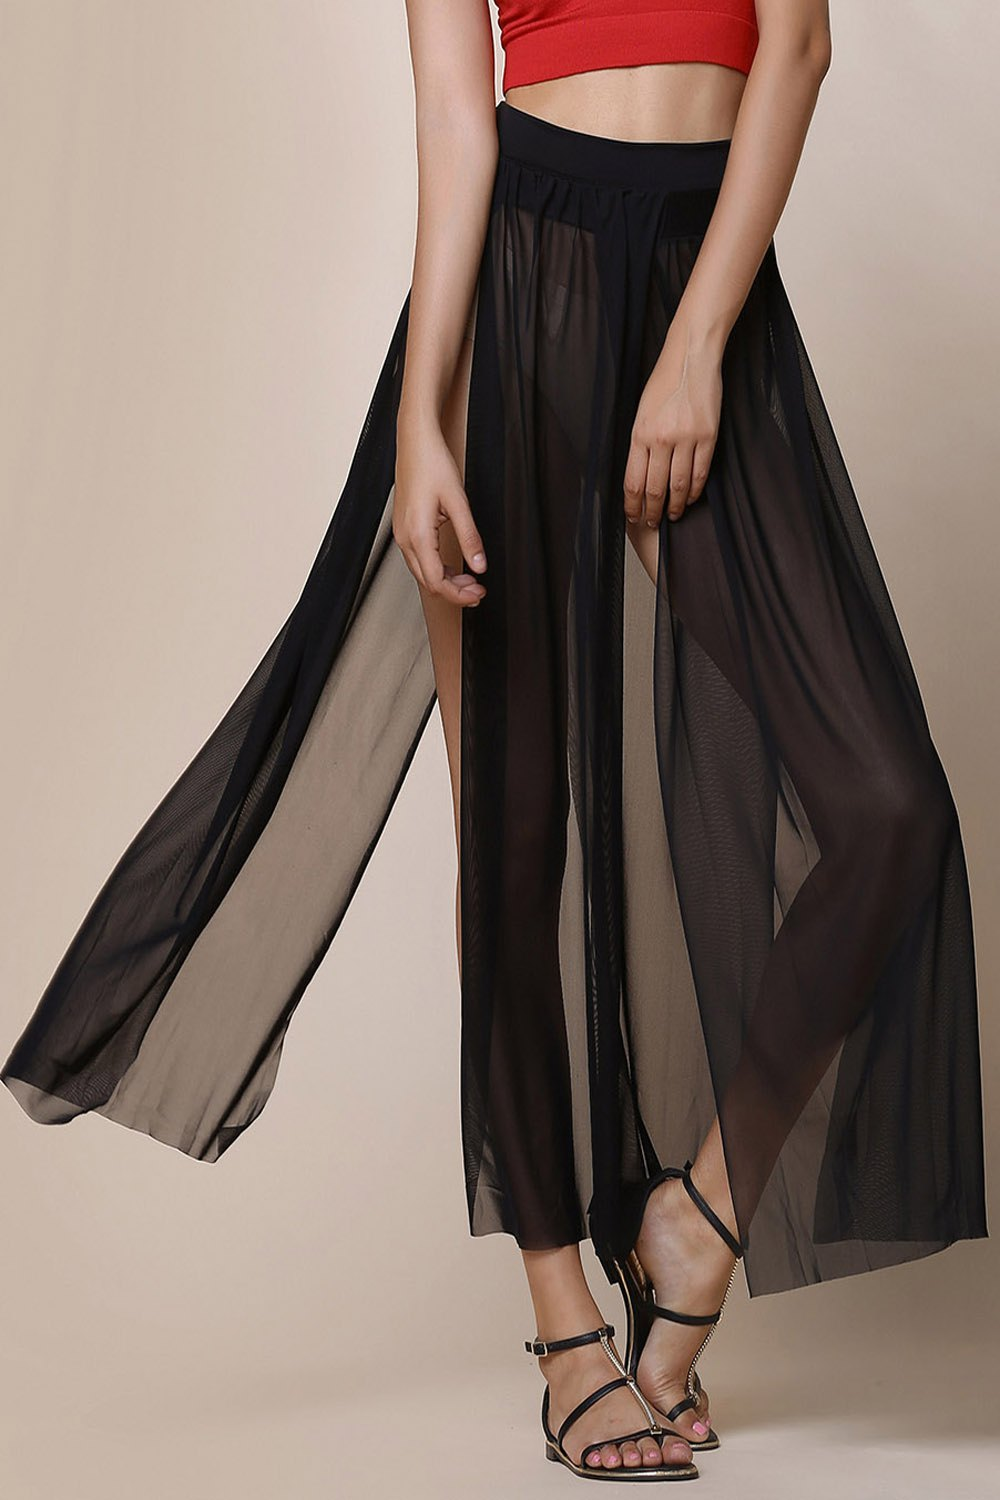 Stylish Low-Waisted High Slit Solid Color Women's Skirt